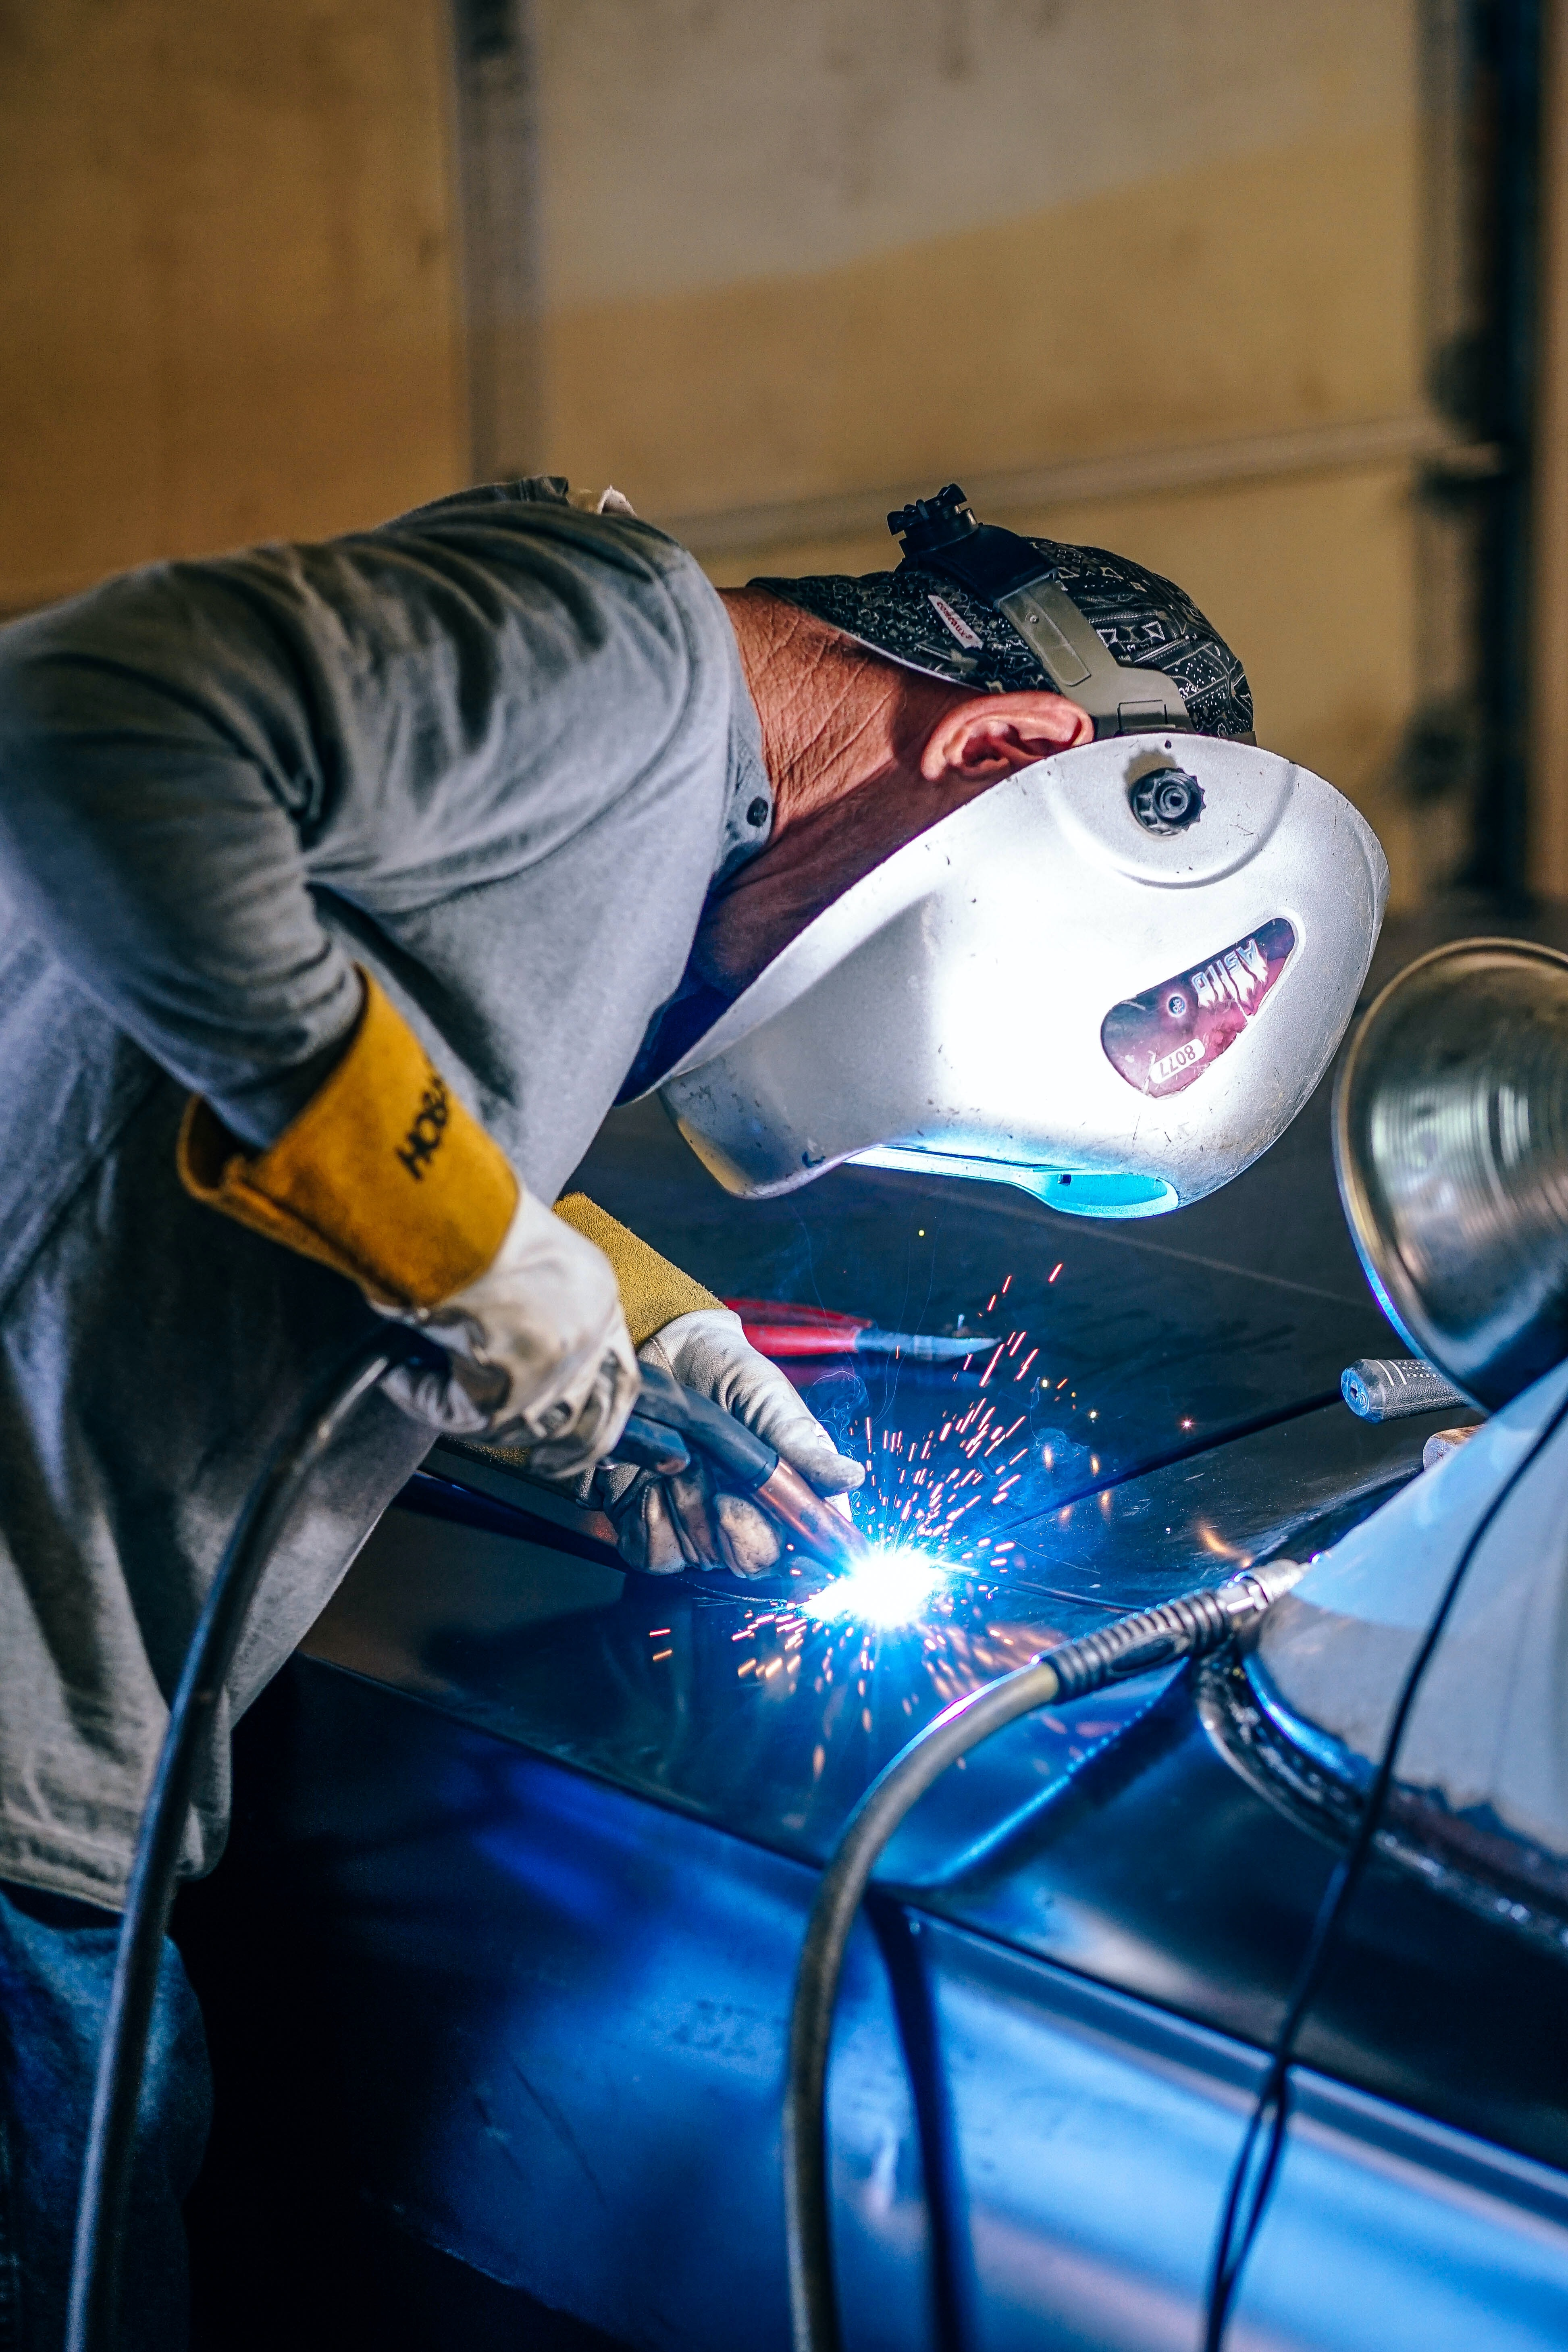 Welding work on a car at Boggs Body auto shop in Warrenton, Virginia